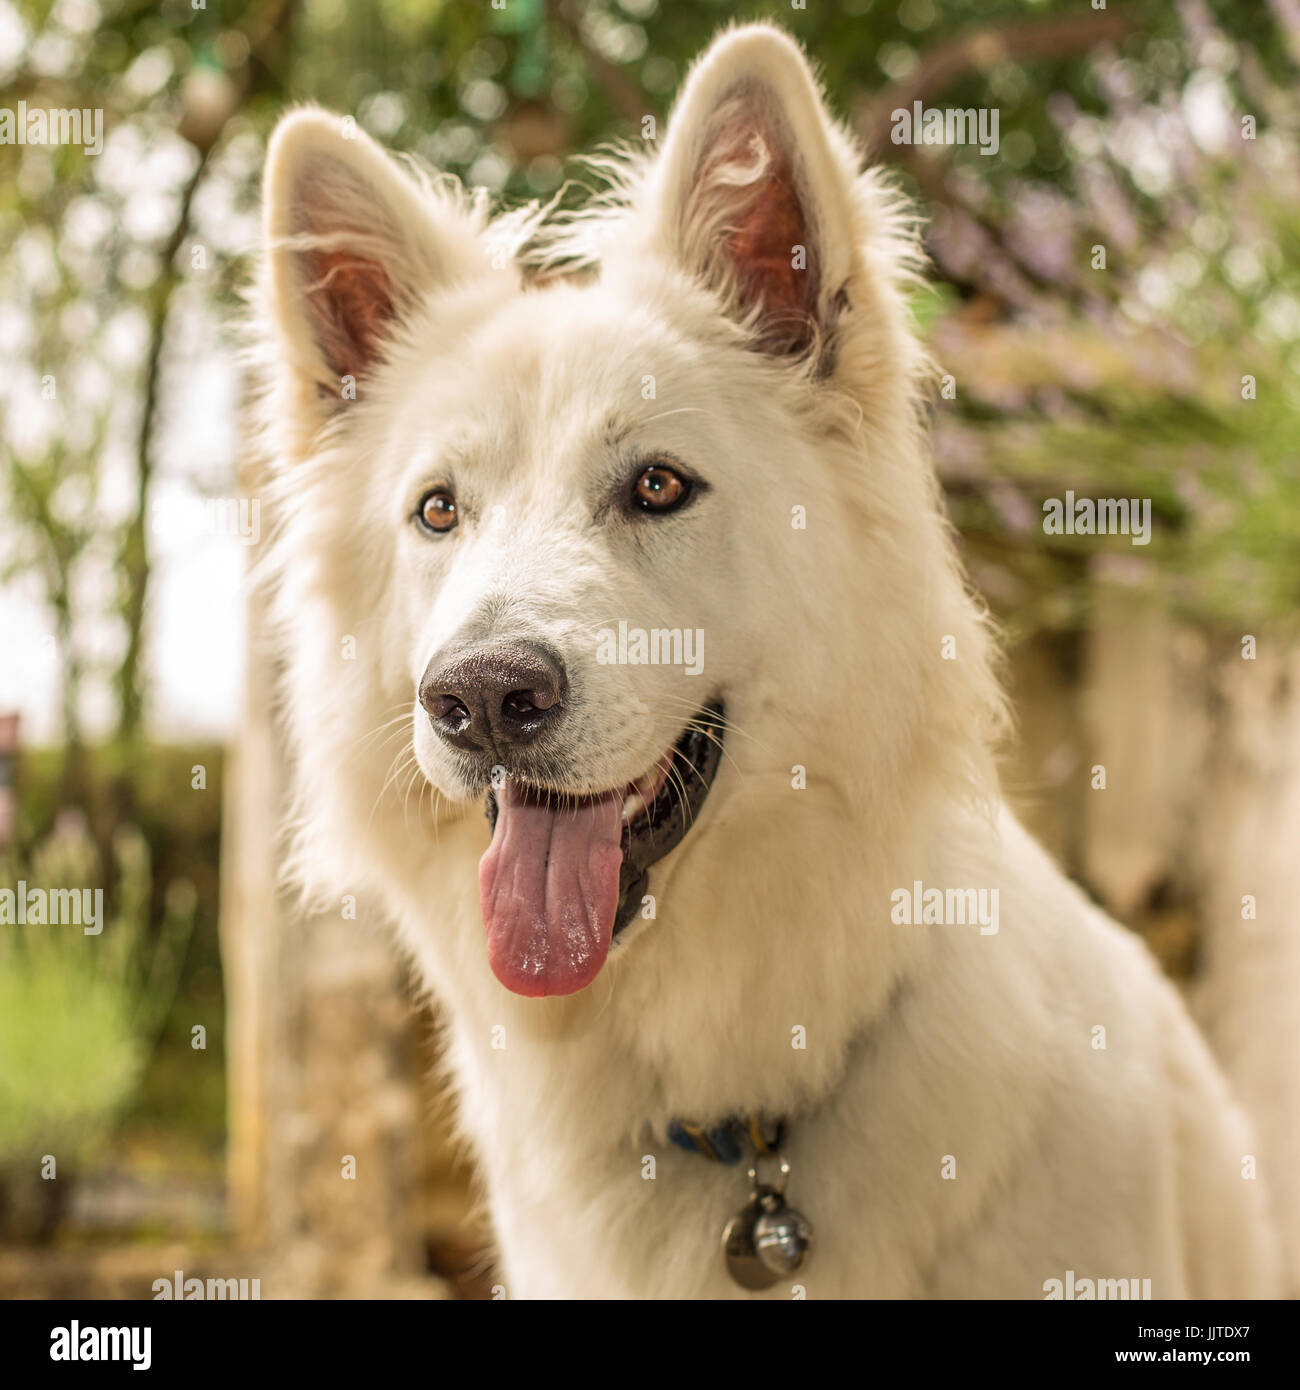 A Berger Blanc Suisse dog (or white shepherd) with tongue out looking happy and alert. - Stock Image